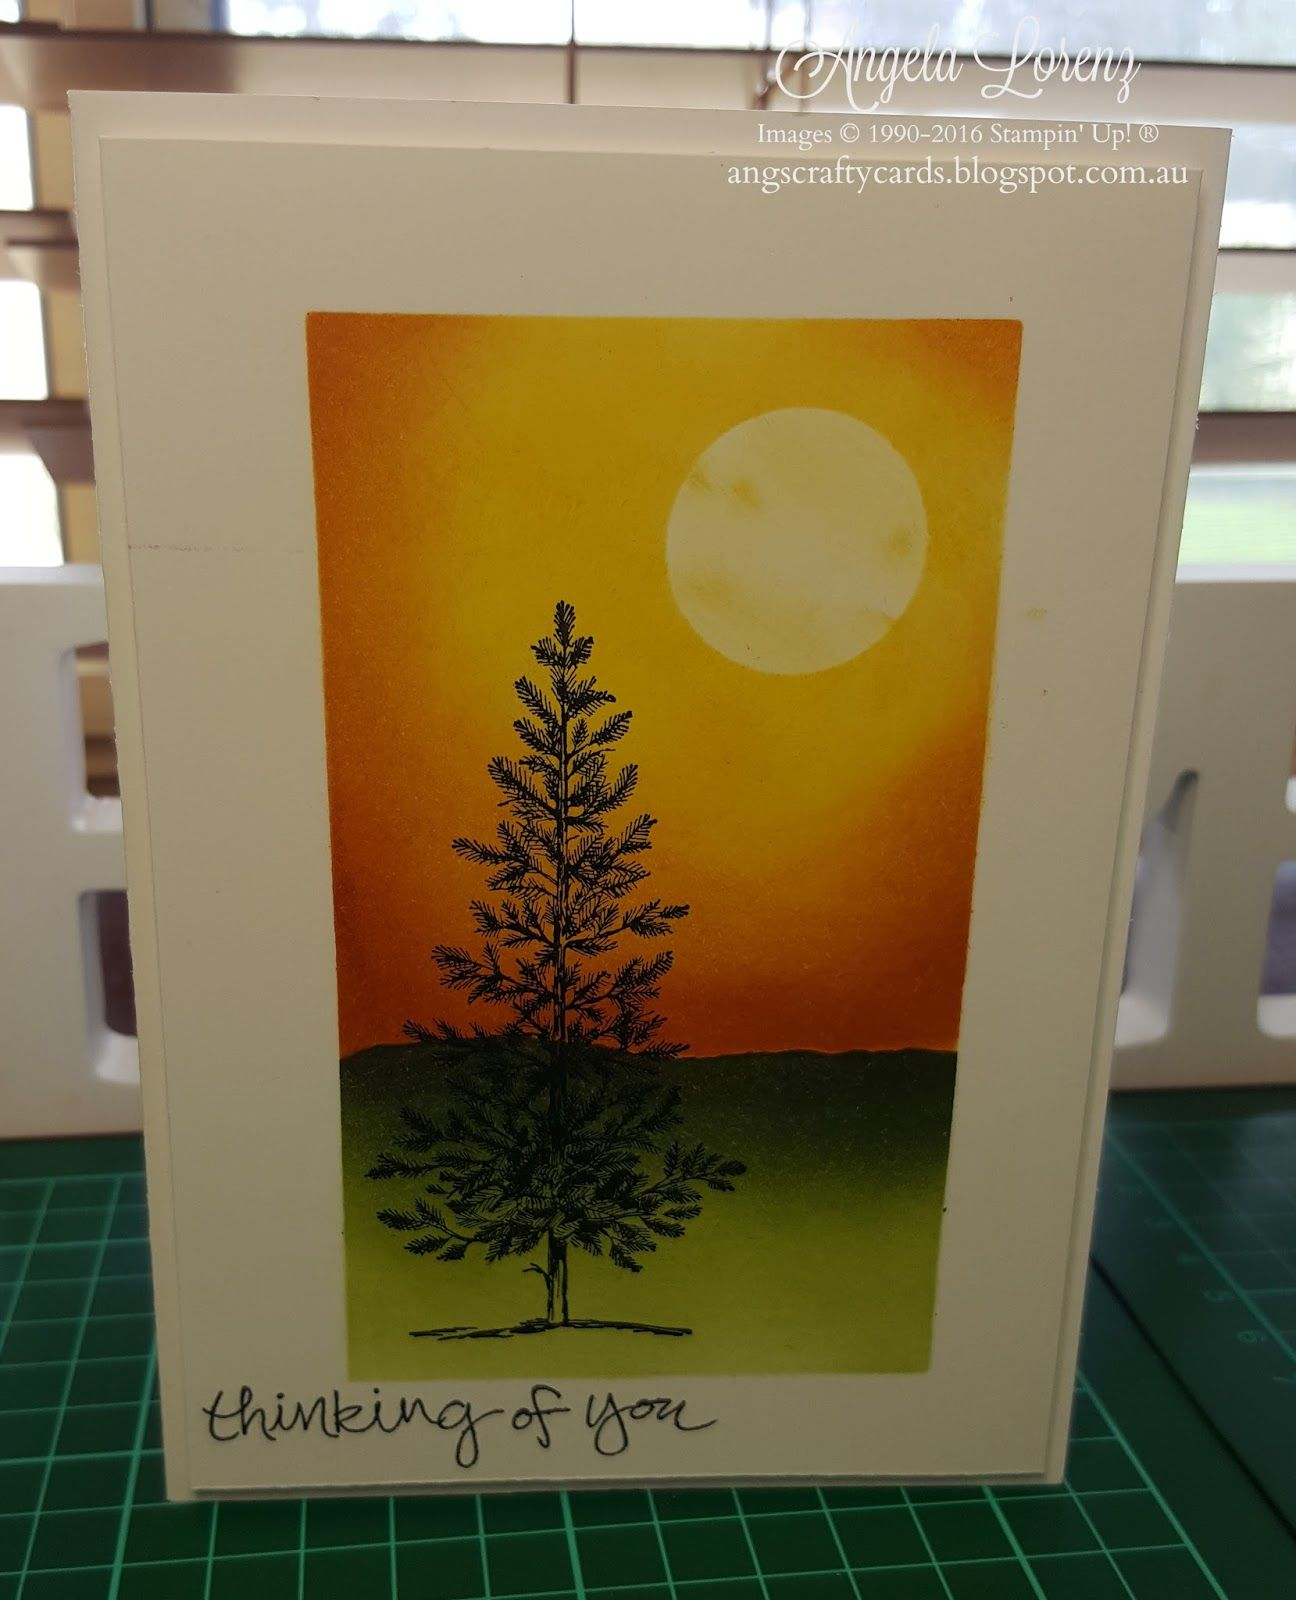 Angela Lorenz – Crazy Crafters Blog Hop with Guest Stamper Paula Dobson. Click on picture to see more creations by Angela. Stampin Up. #stampinup #angelalorenz #lovelyasatree  #shelteringtree  #2016holidaycatalogue  #papercraft #handmadecards #handmade #stampinupdemonstrator #stampinupdemonstratoraustralia #handmadecardsarethebest  #angscraftycards #stampinupdemo  #crazycraftersbloghop #crazycraftersbh  #bloghop #masking #sponging